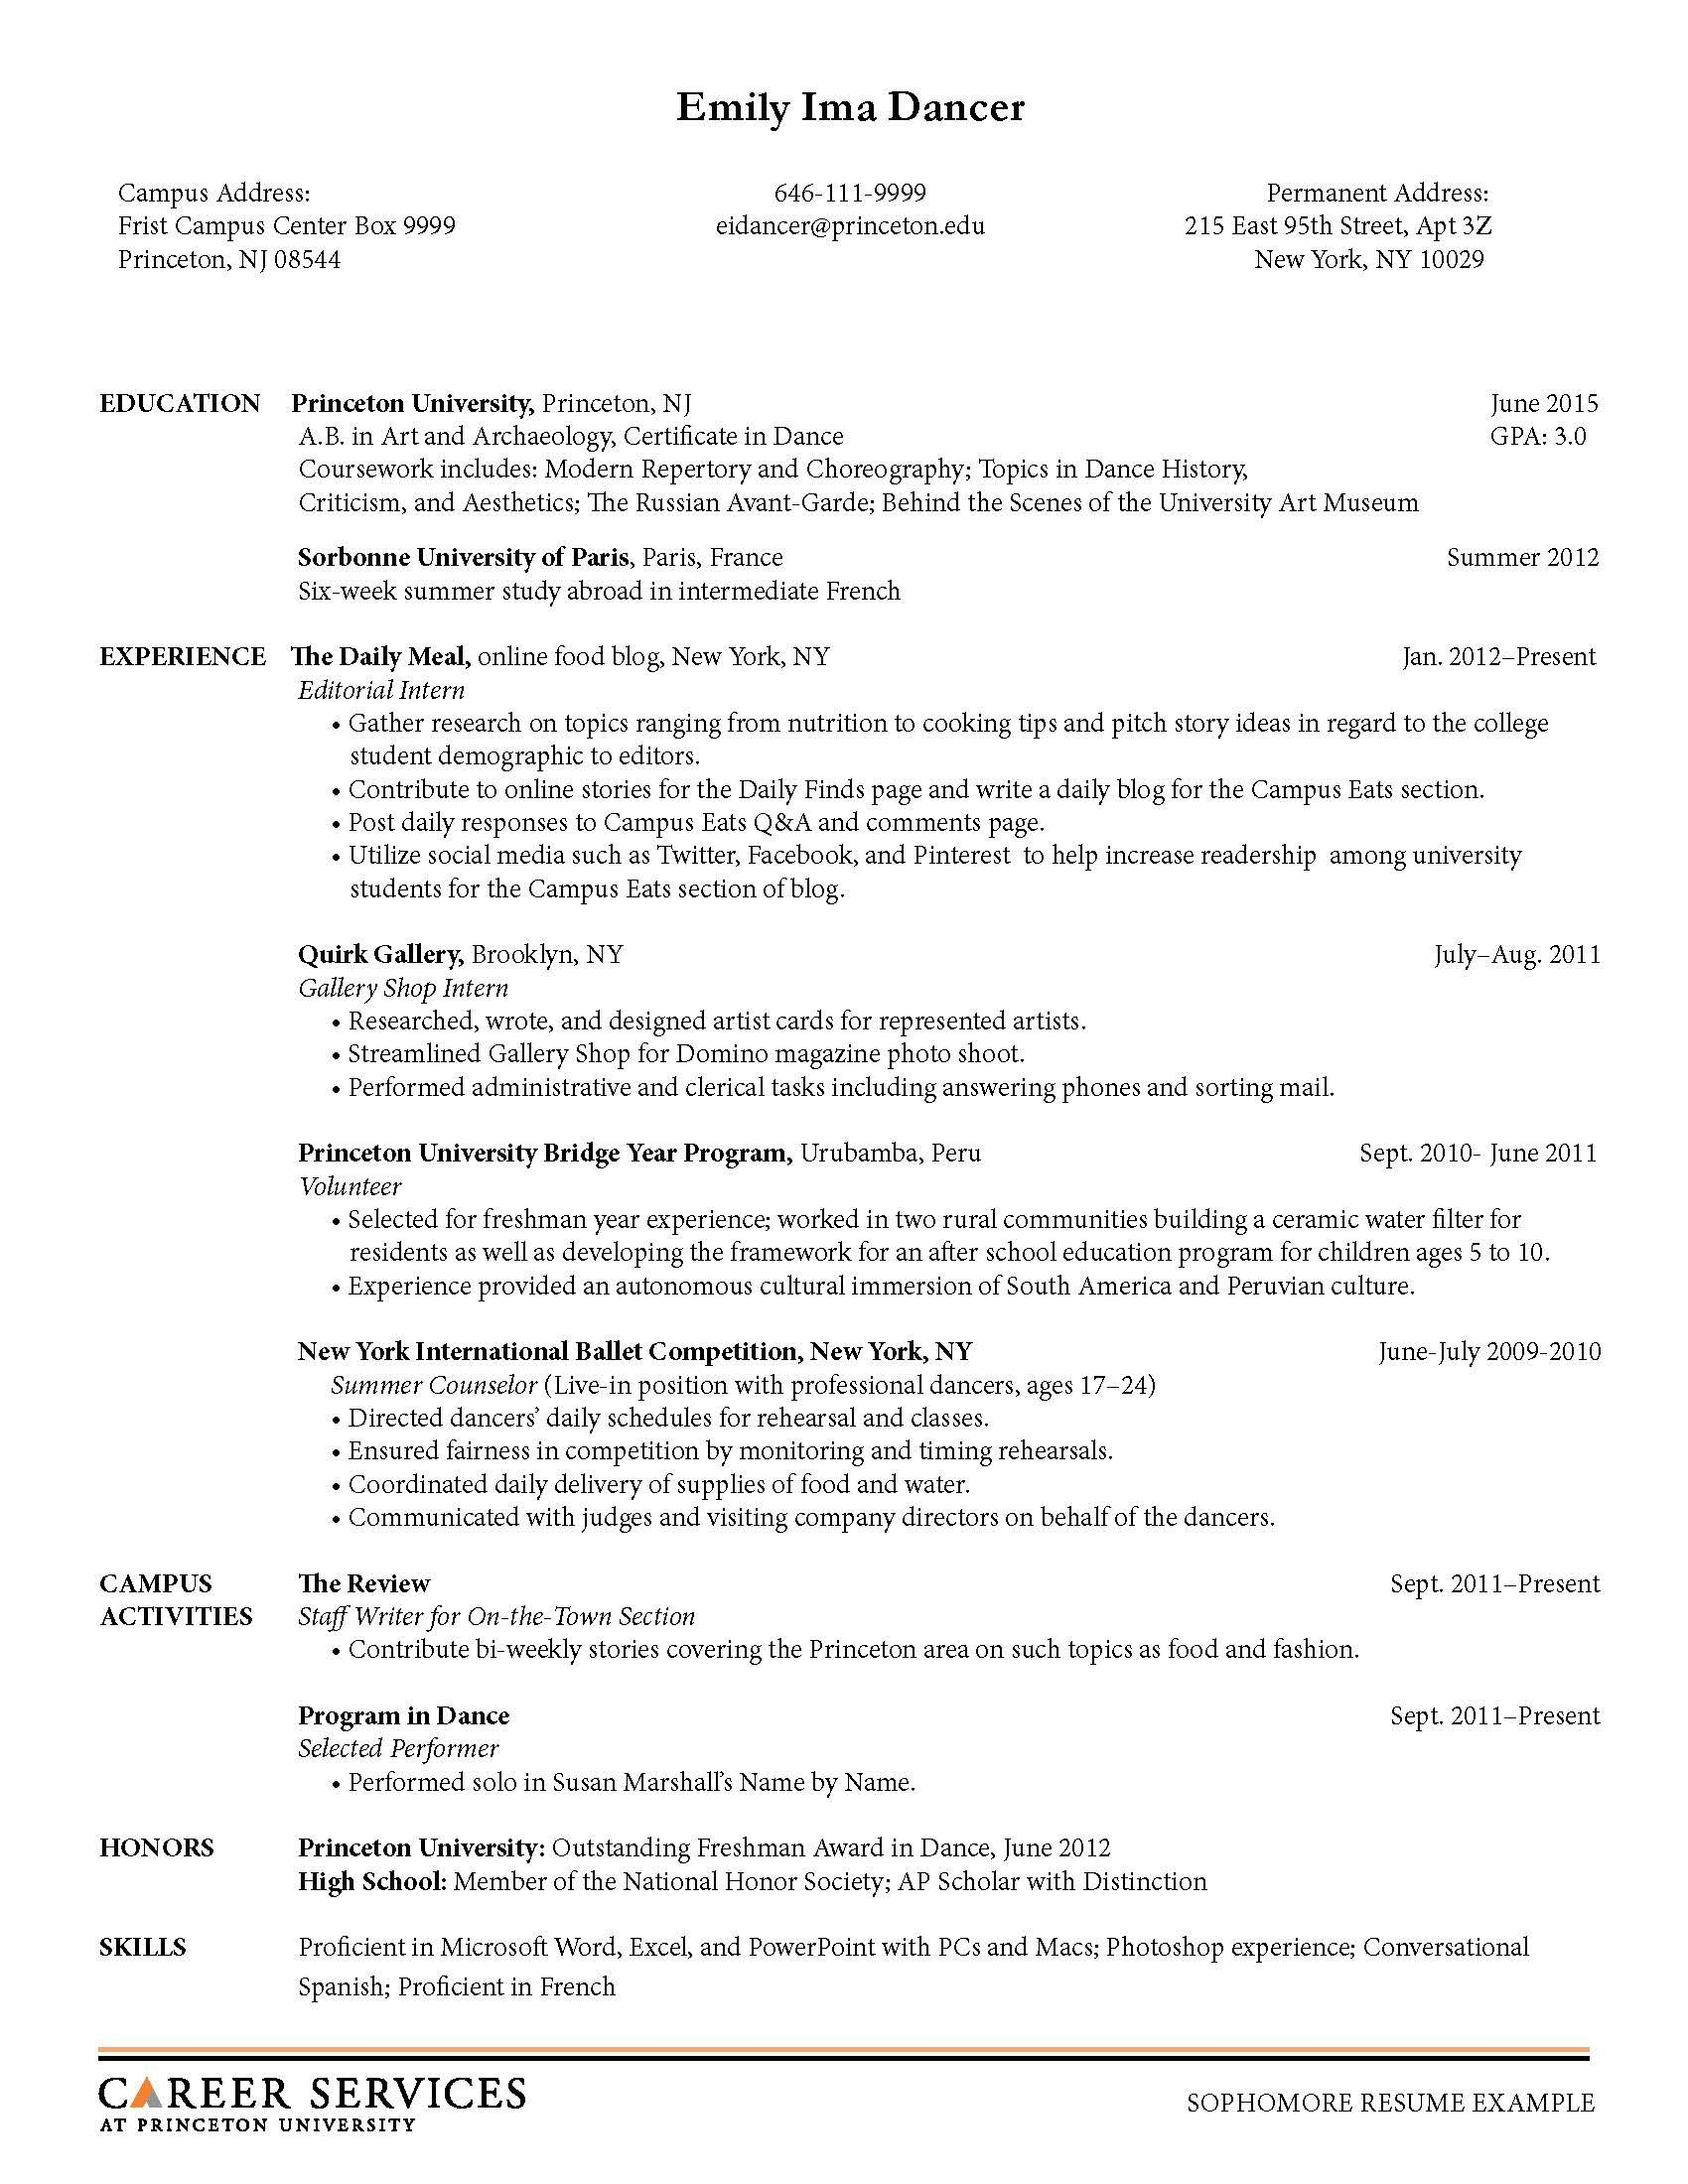 Picnictoimpeachus  Outstanding Sample Resume Resume And Career On Pinterest With Great Should I Staple My Resume Besides Types Of Resume Furthermore Sending Resume Via Email With Nice Example Of Skills For Resume Also Obama Resume In Addition Resume Cover Letter Template Word And Resume Folders As Well As Powerful Resume Words Additionally Awesome Resume From Pinterestcom With Picnictoimpeachus  Great Sample Resume Resume And Career On Pinterest With Nice Should I Staple My Resume Besides Types Of Resume Furthermore Sending Resume Via Email And Outstanding Example Of Skills For Resume Also Obama Resume In Addition Resume Cover Letter Template Word From Pinterestcom